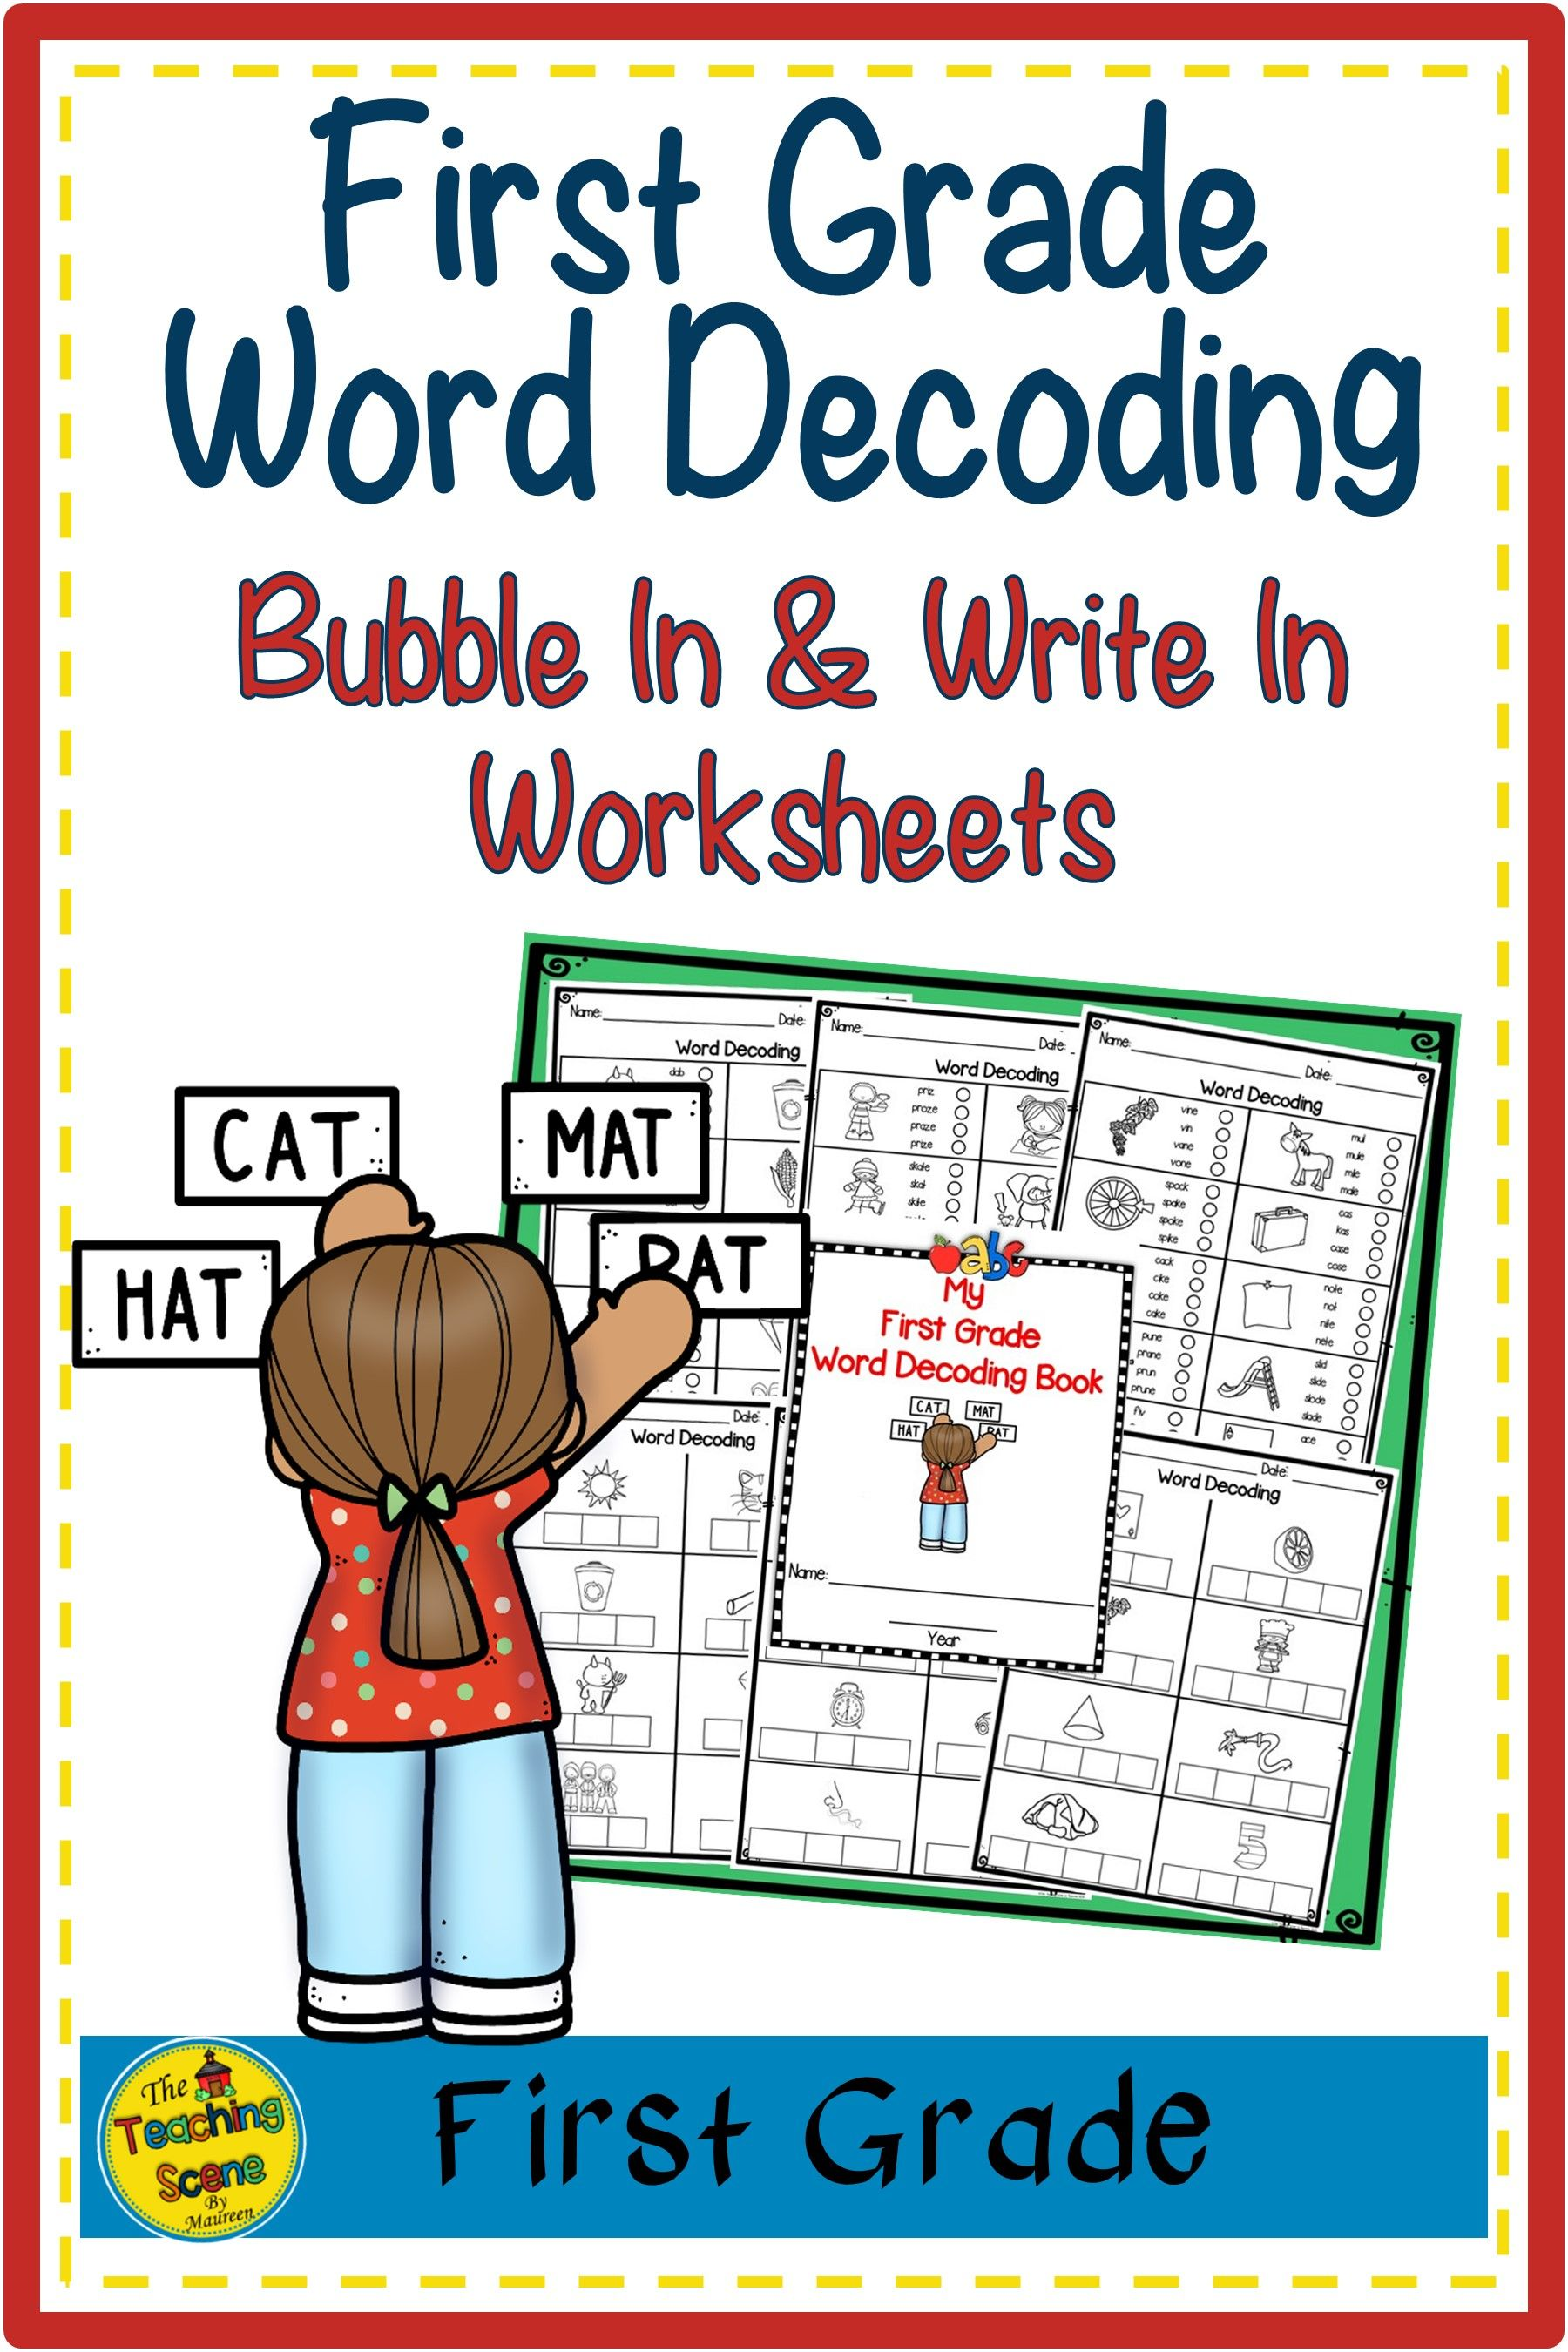 First Grade Word Decoding Worksheets In